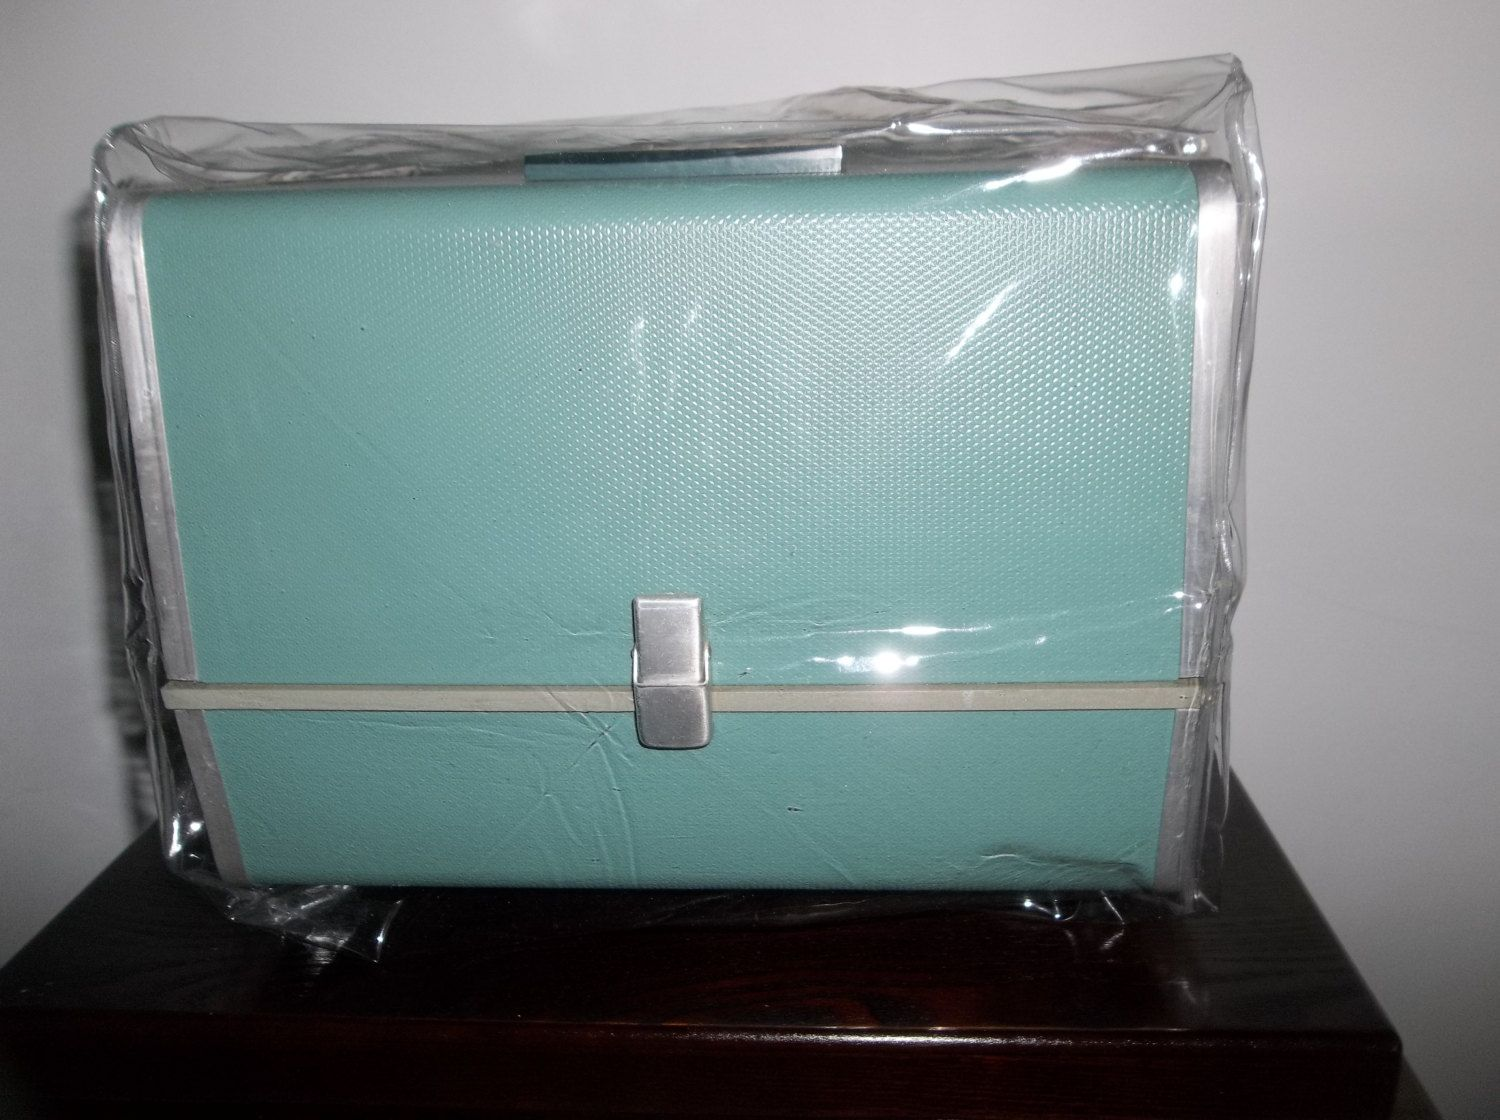 Clear Vinyl Dust And Rain Covers For Your Sound And Video Equipment Slide Projector Etc Clear Vinyl Rain Cover Vinyl